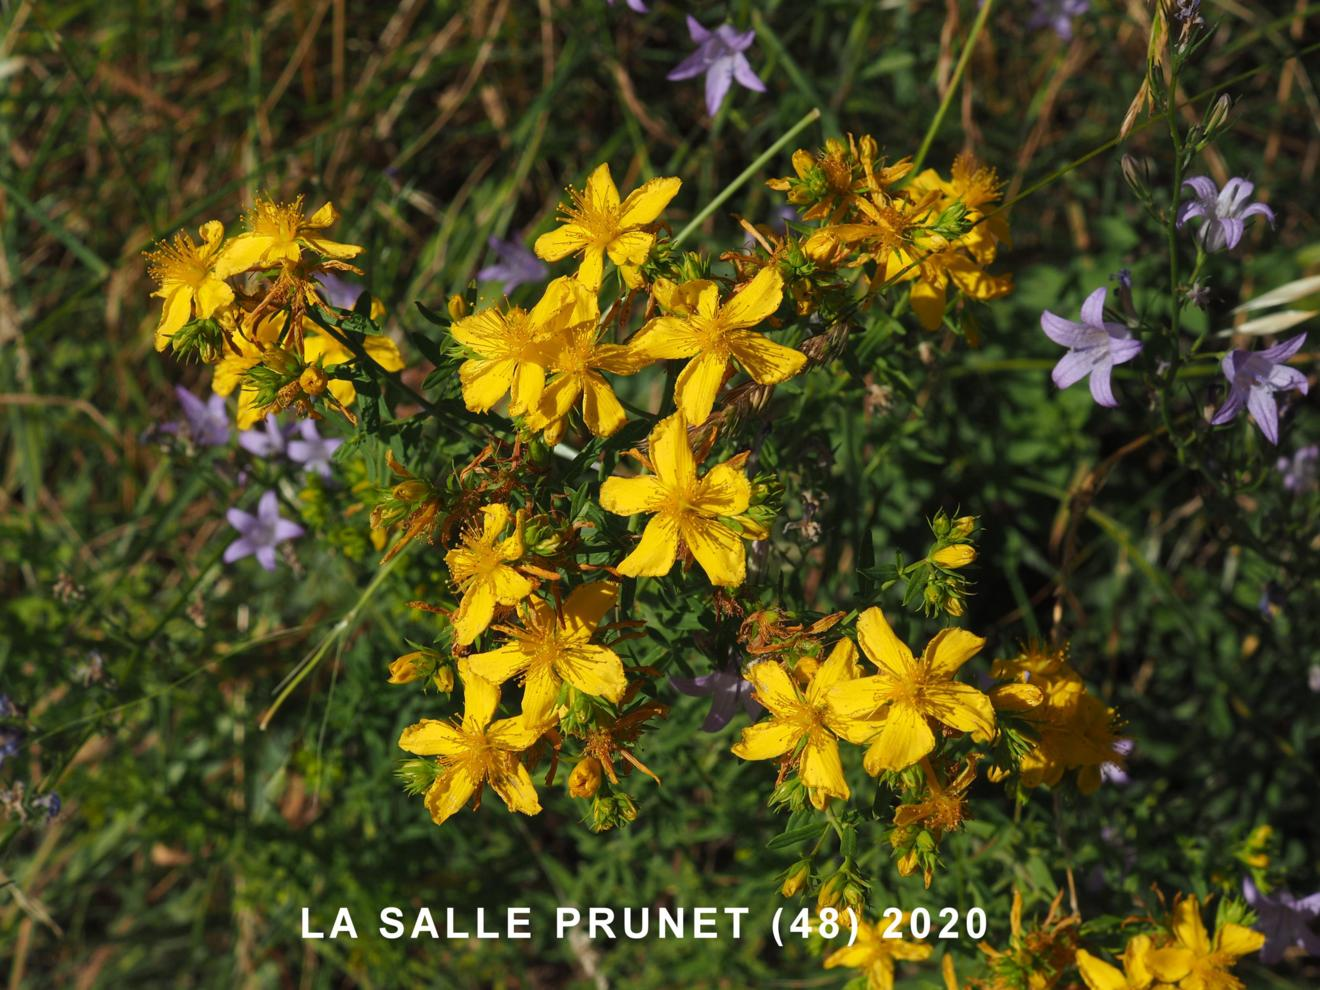 St. John's Wort, Perforate